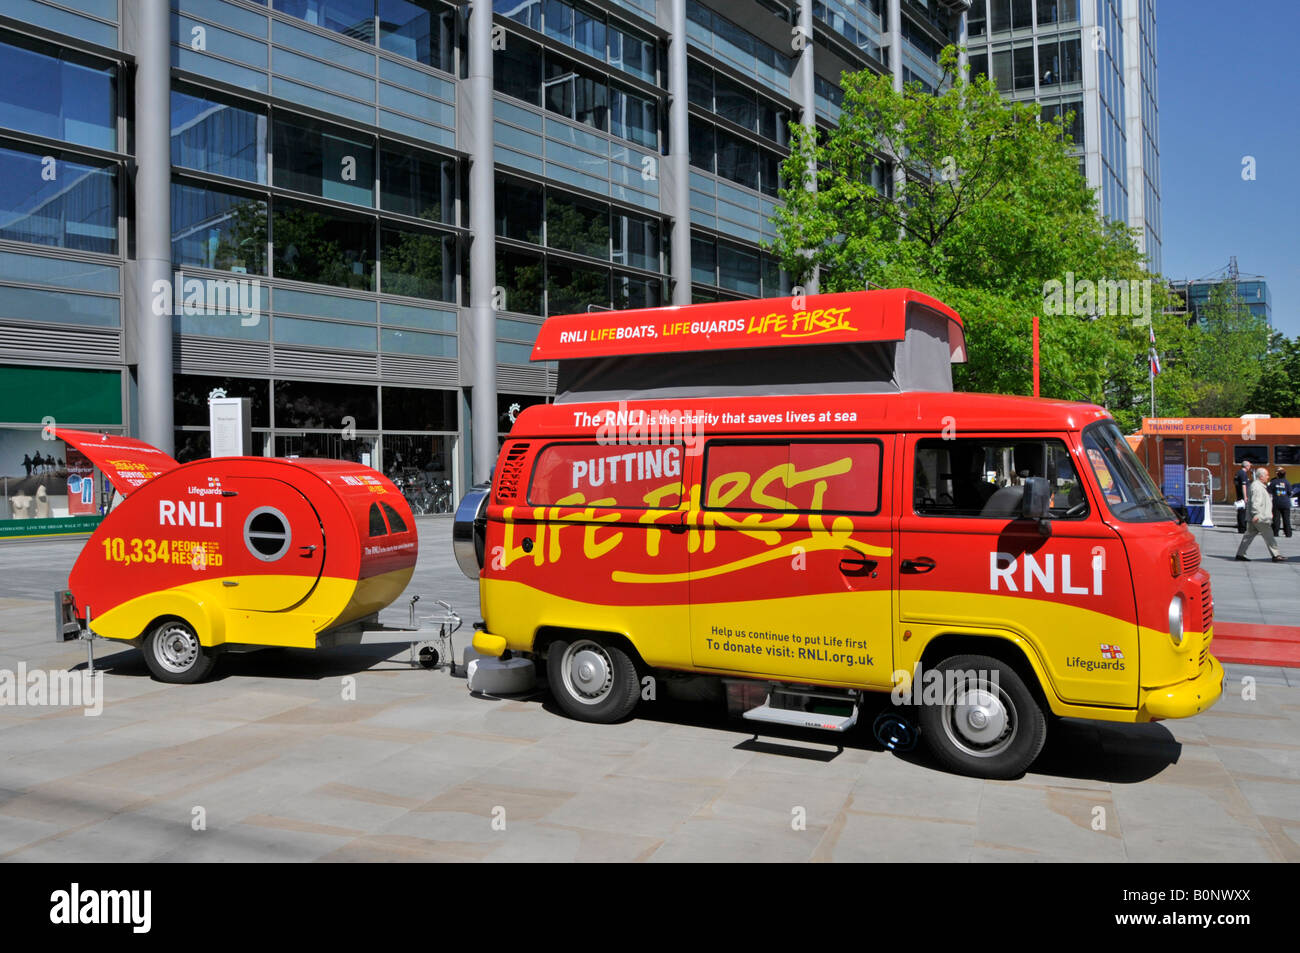 Royal National Lifeboat Institution fund raising display City Of London - Stock Image